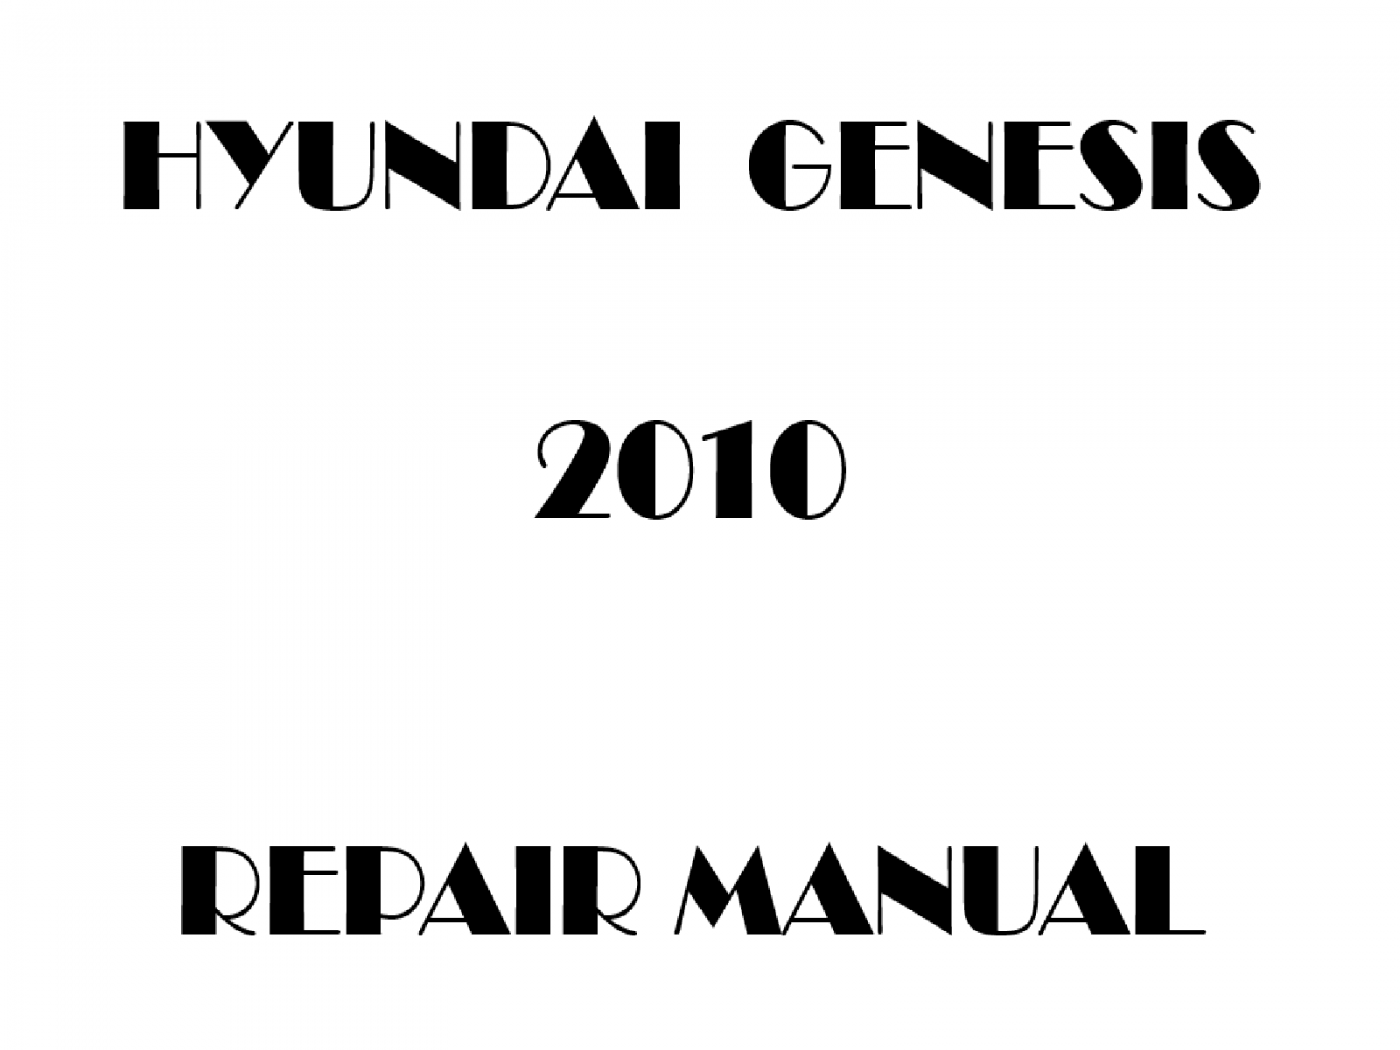 2010 Hyundai Genesis repair manual